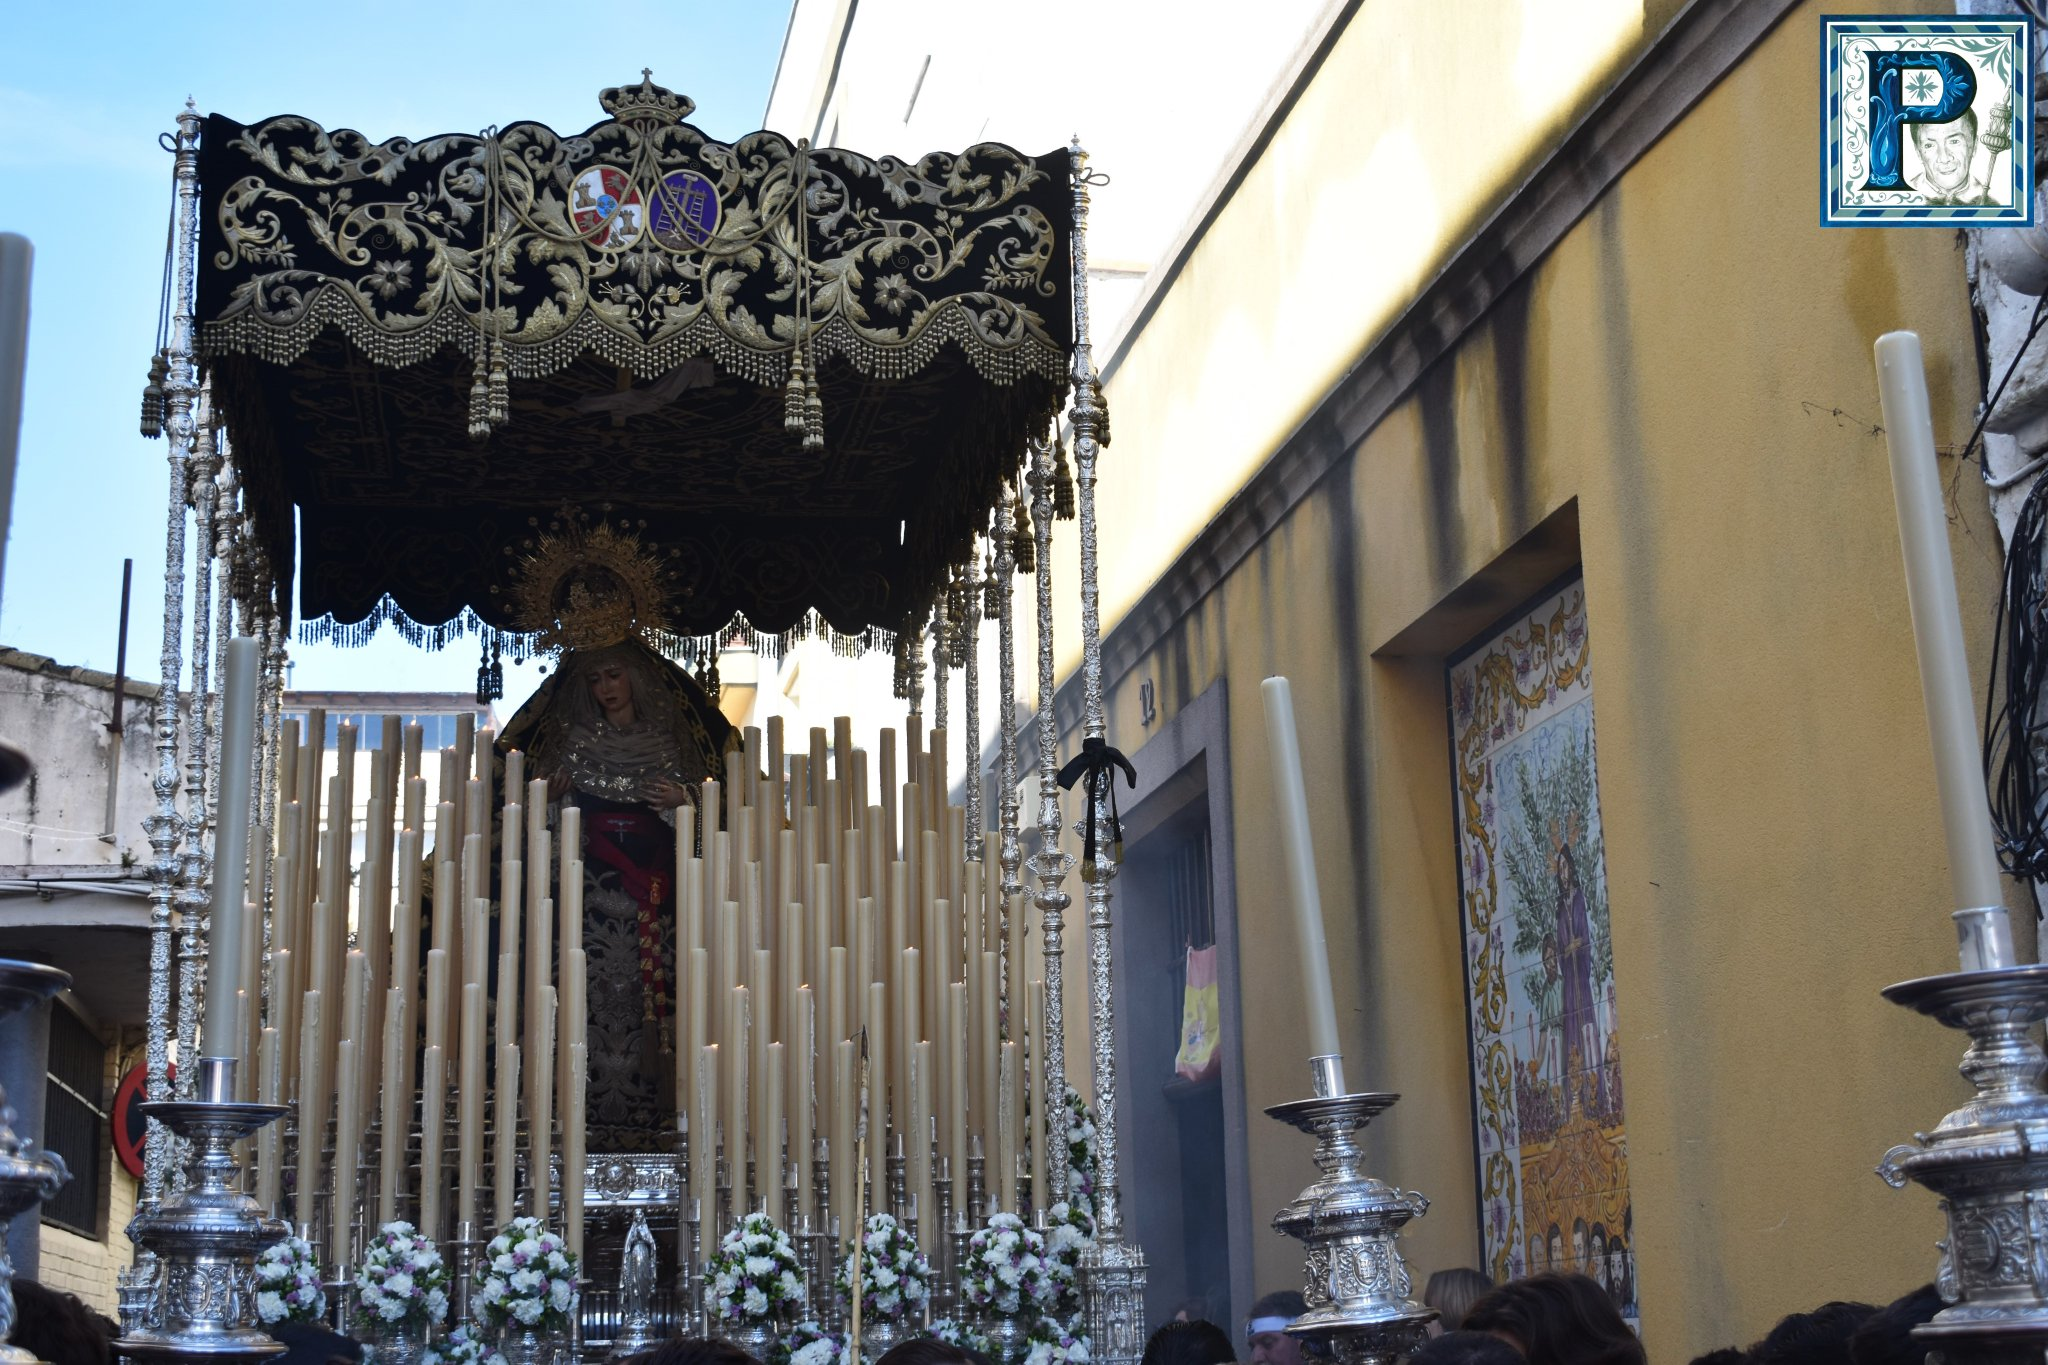 EN VIDEO: Traslado de la Virgen de la Piedad a la Merced